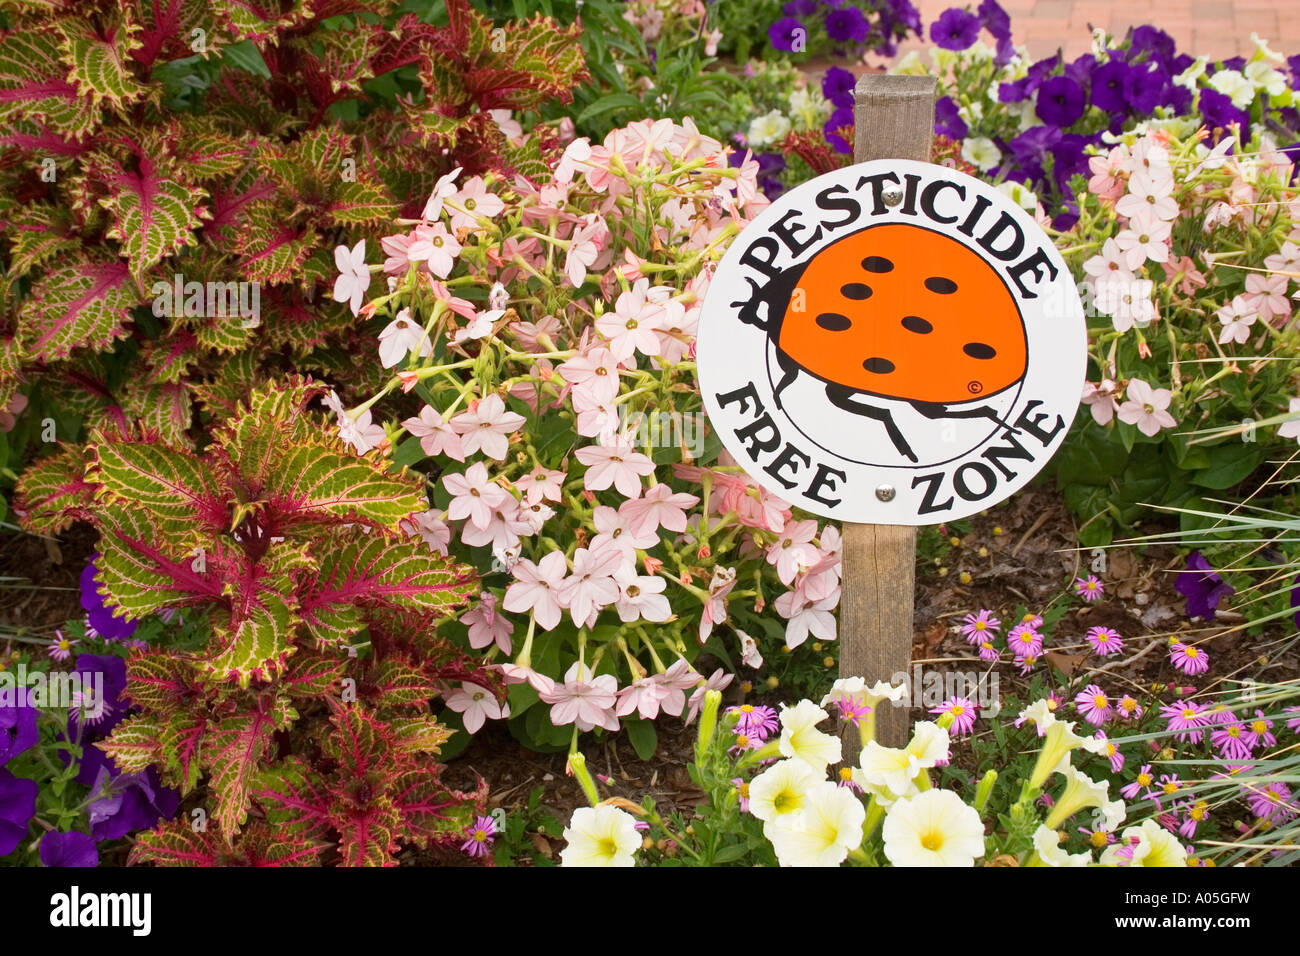 Pesticide free zone sign in flower bed USA Stock Photo: 9887100 - Alamy